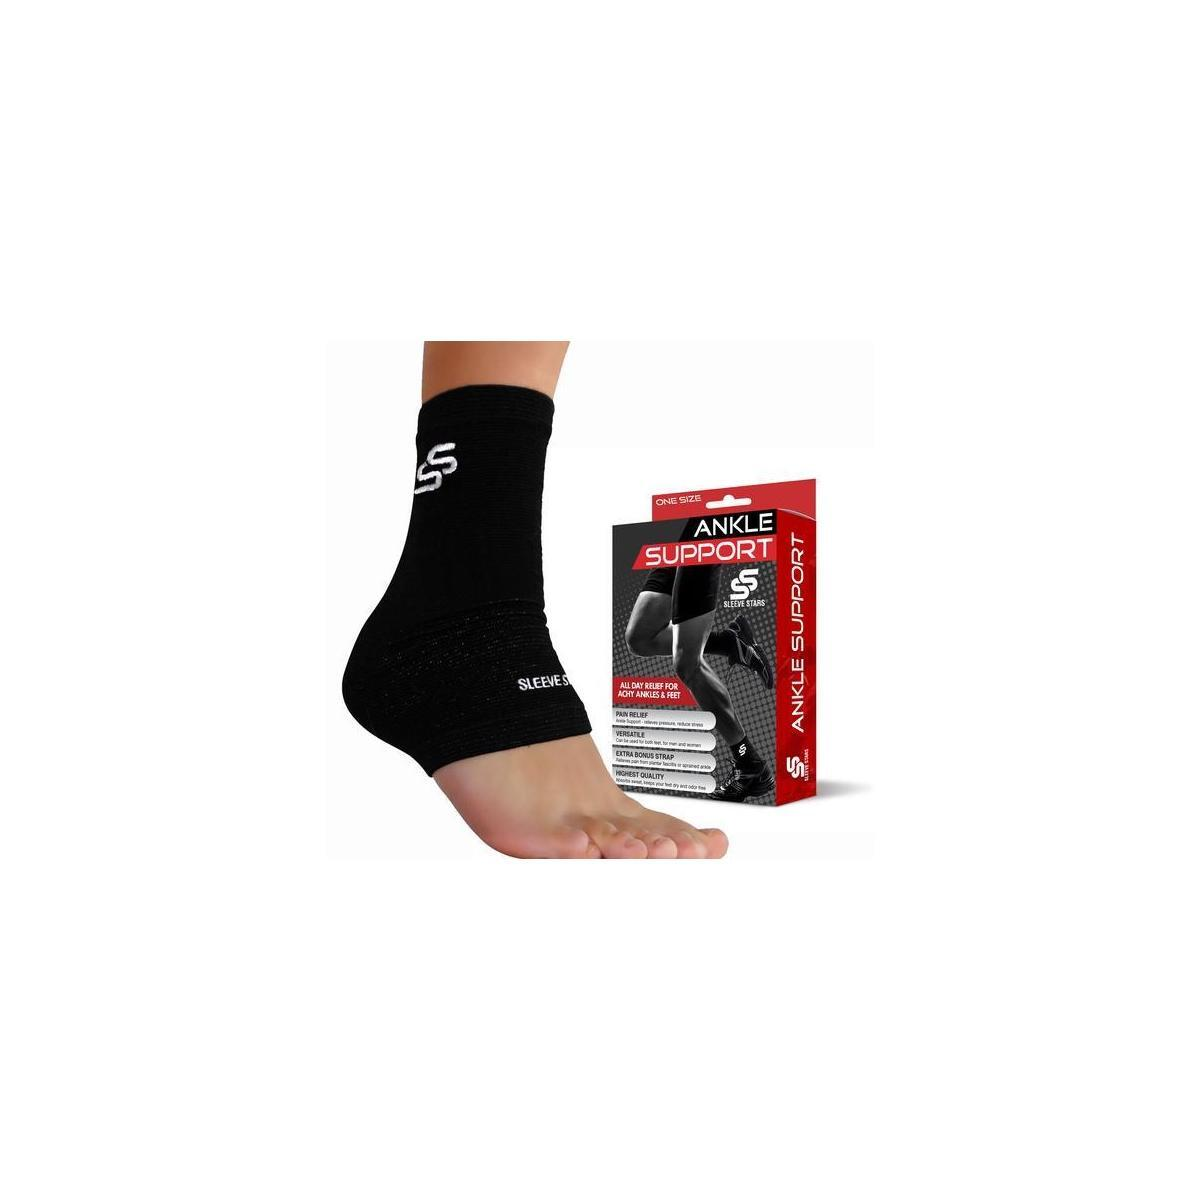 Ankle Brace for Plantar Fasciitis Pain Relief